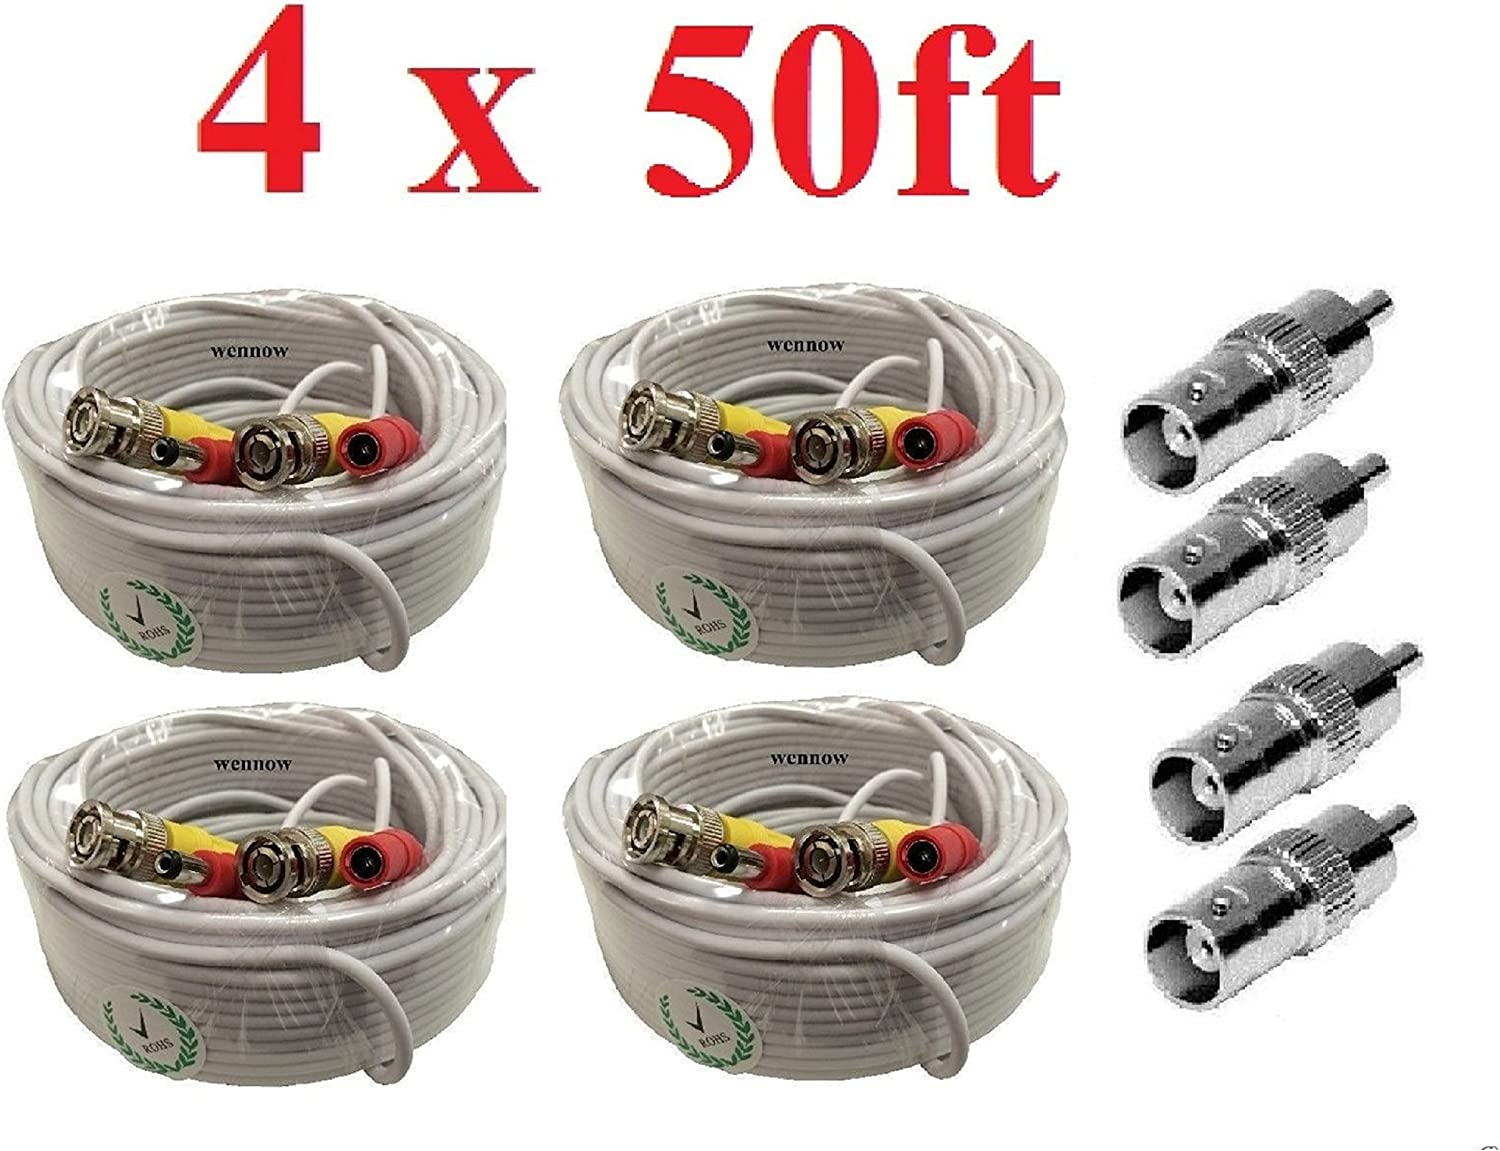 Wennow White Premium Quality Max 61% OFF Tulsa Mall 4x50Ft Nigh Power Cable for Video